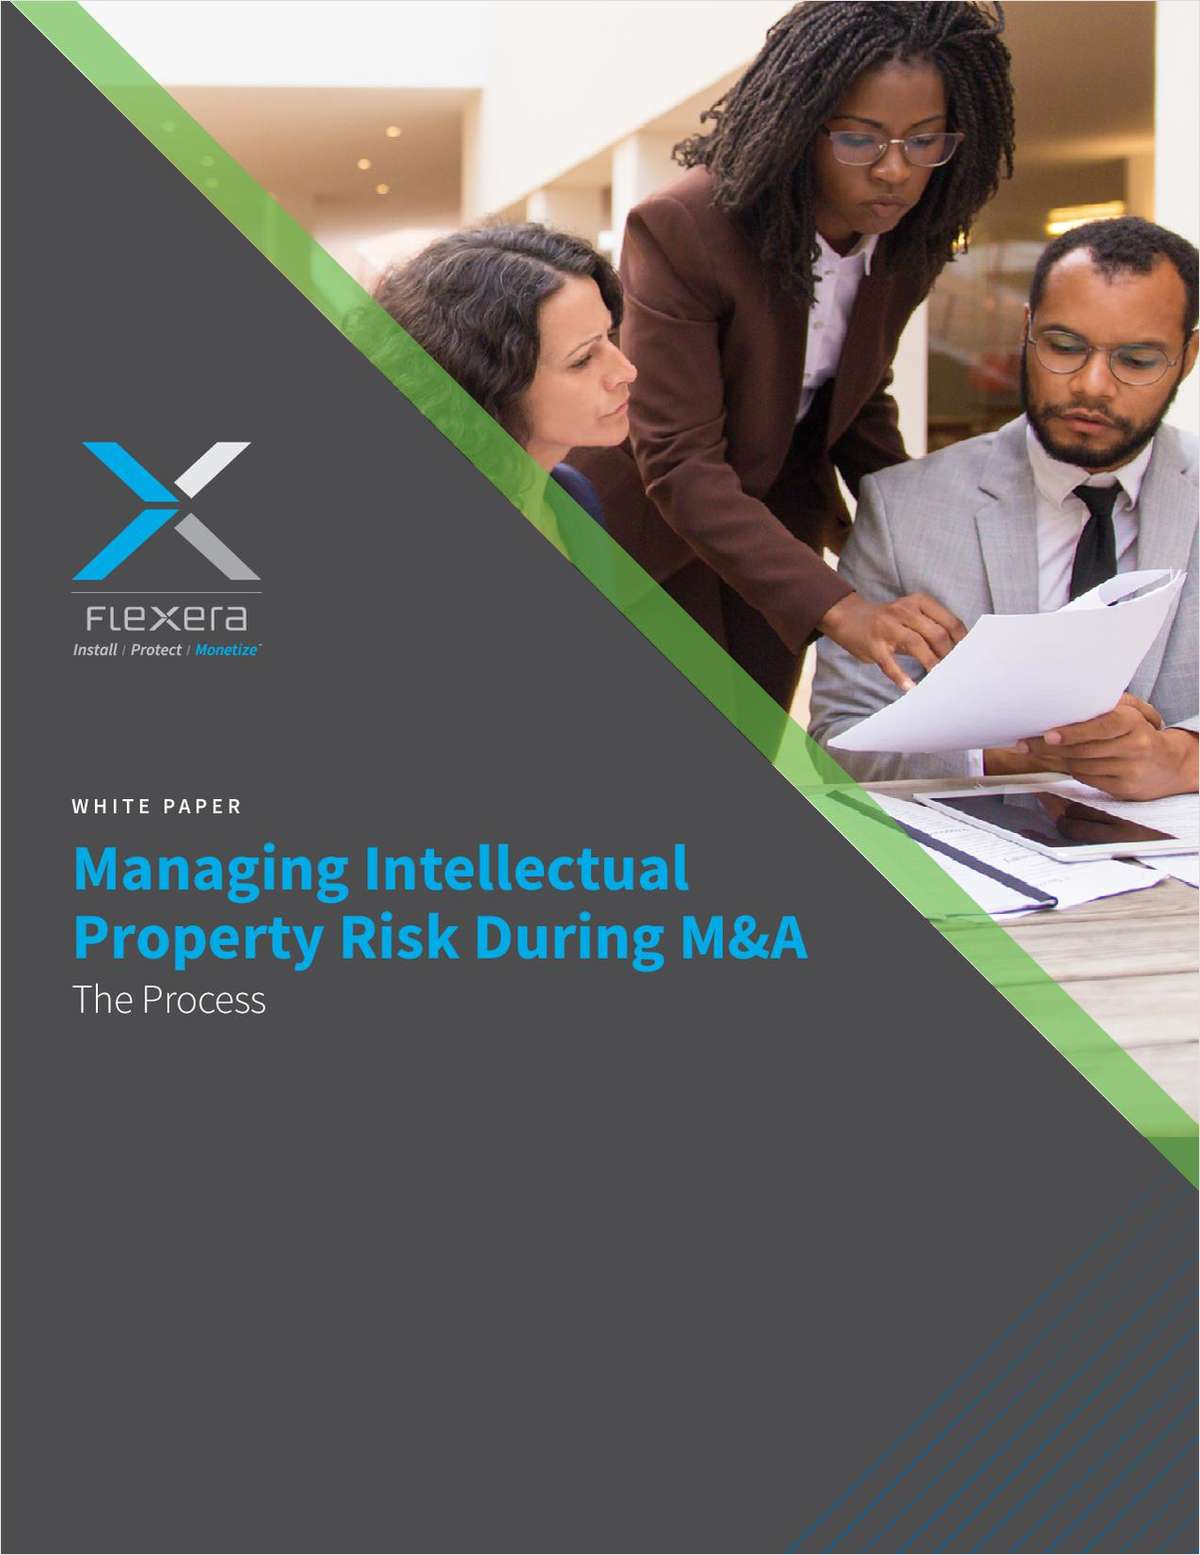 Managing Intellectual Property Risk During M&A - The Process